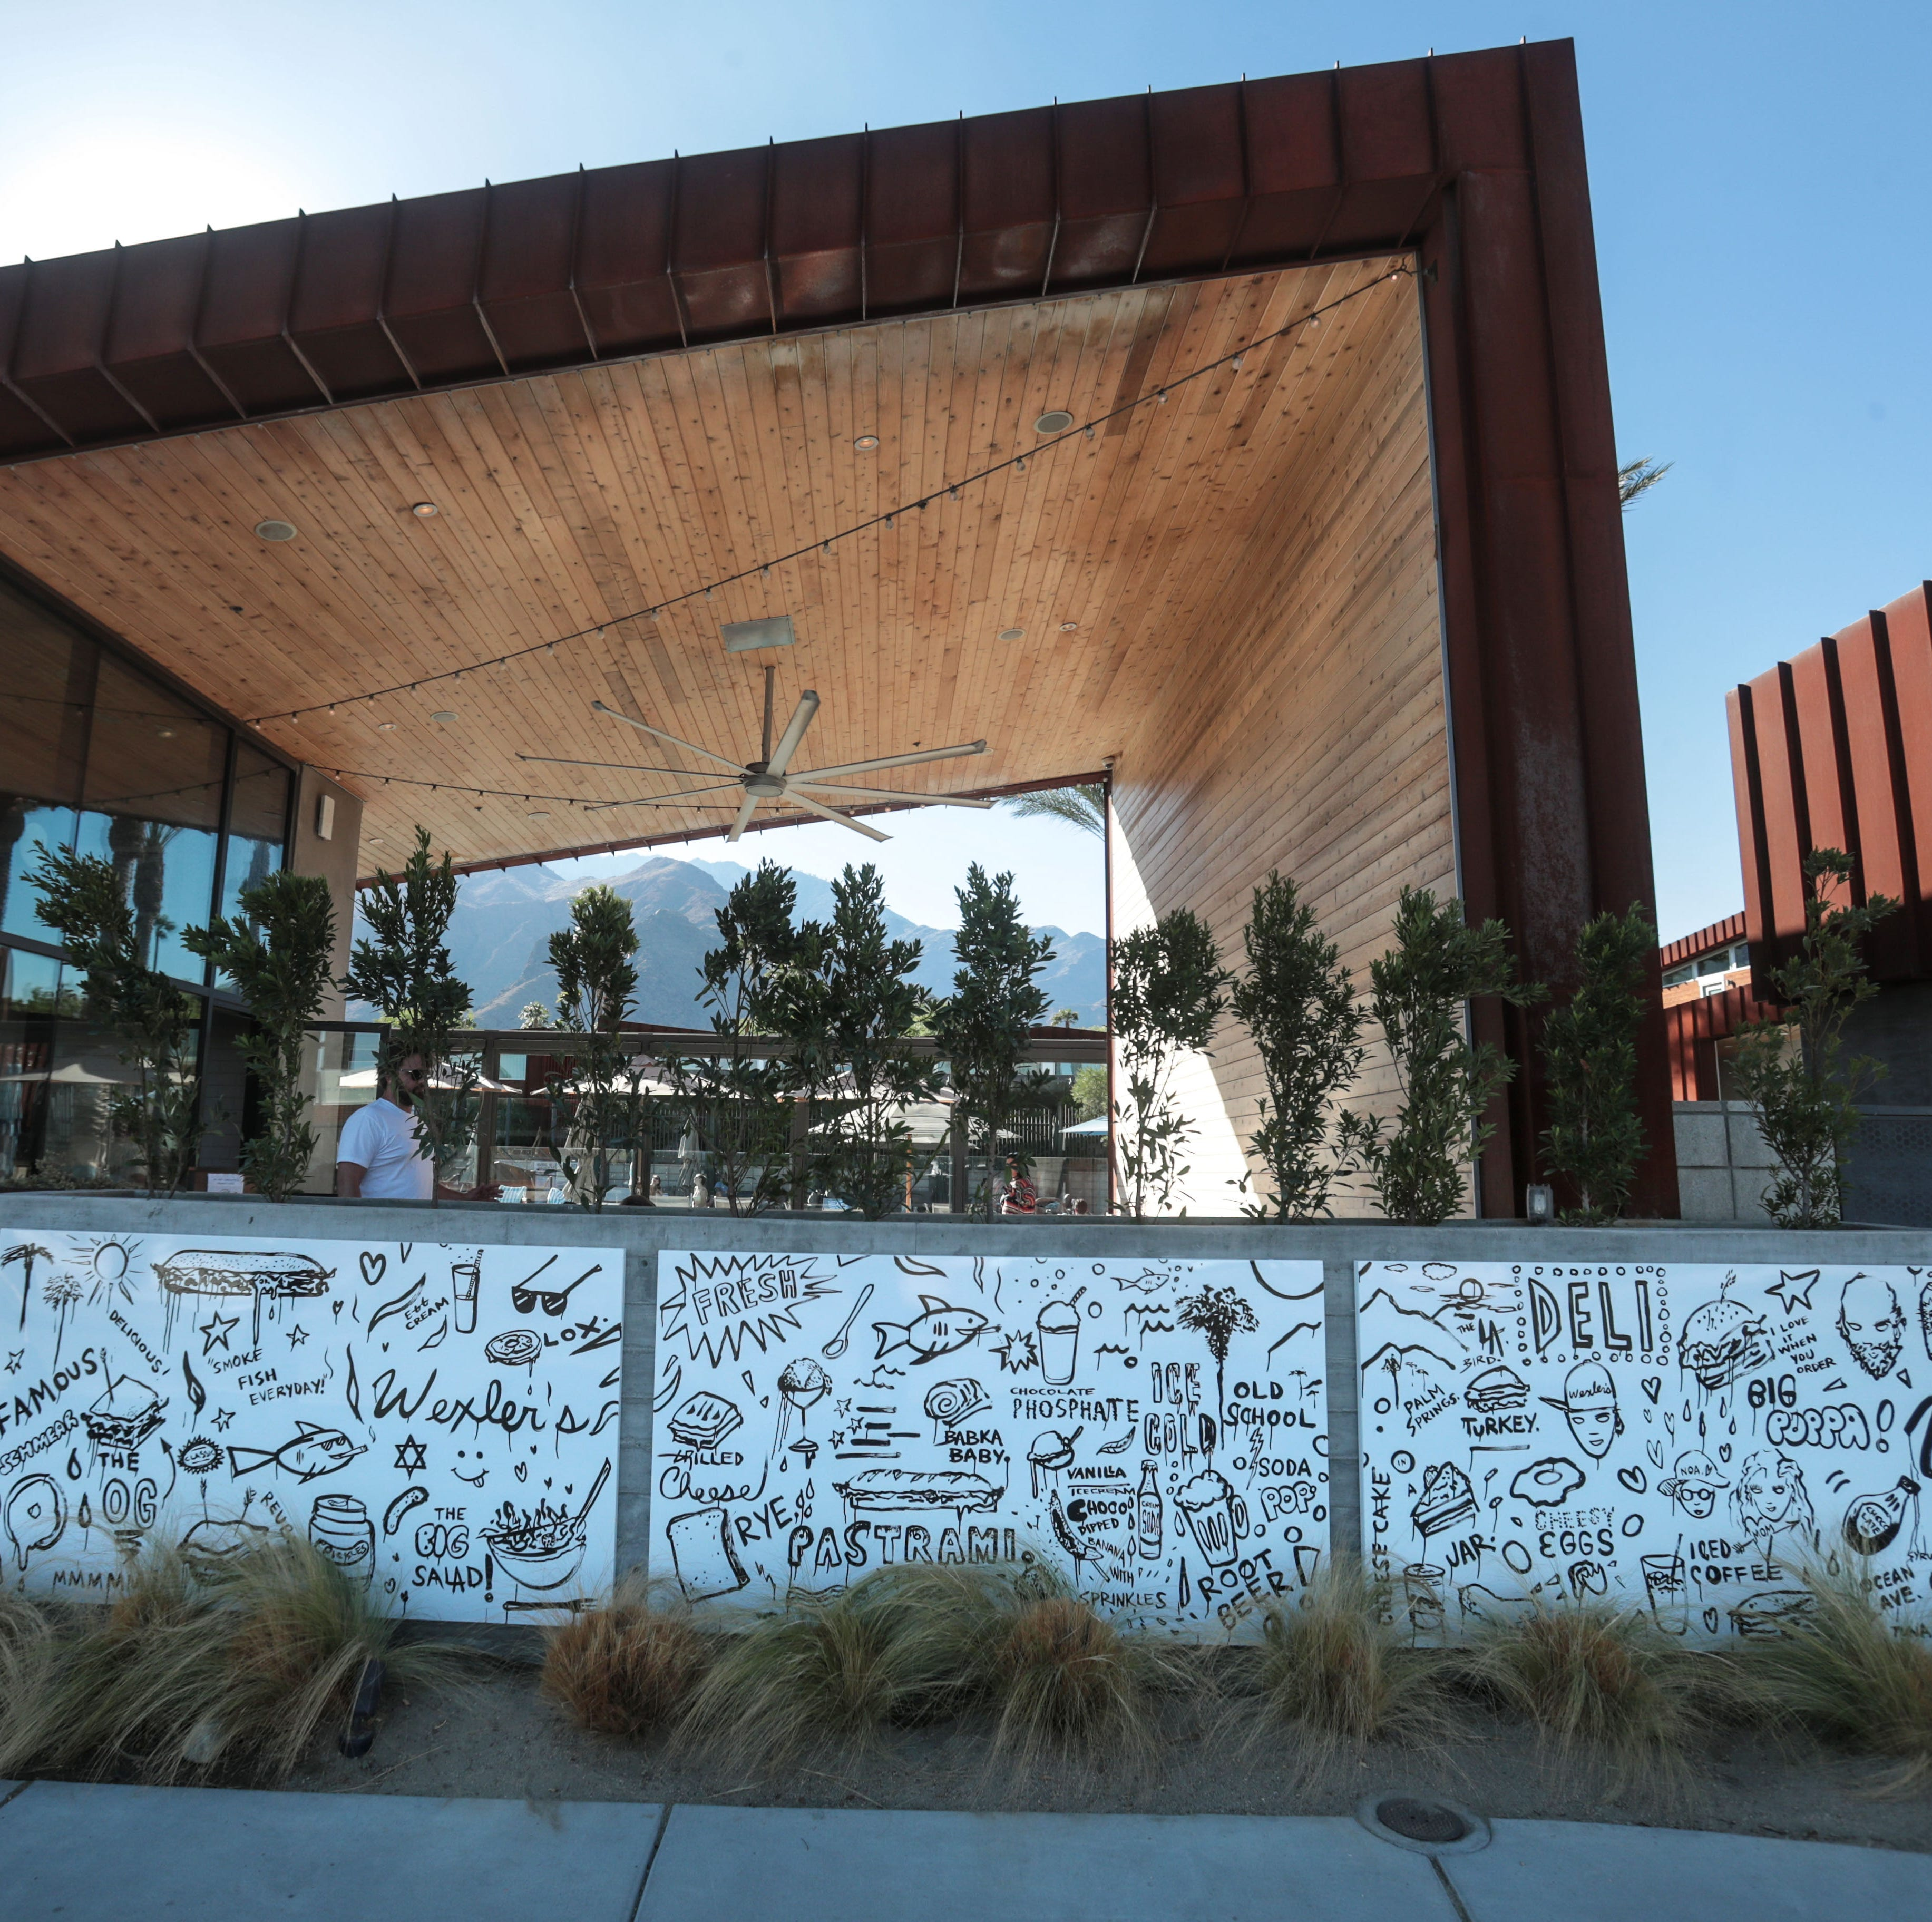 Here's the first look at Gregory Siff's new mural at Wexler's Deli in Palm Springs